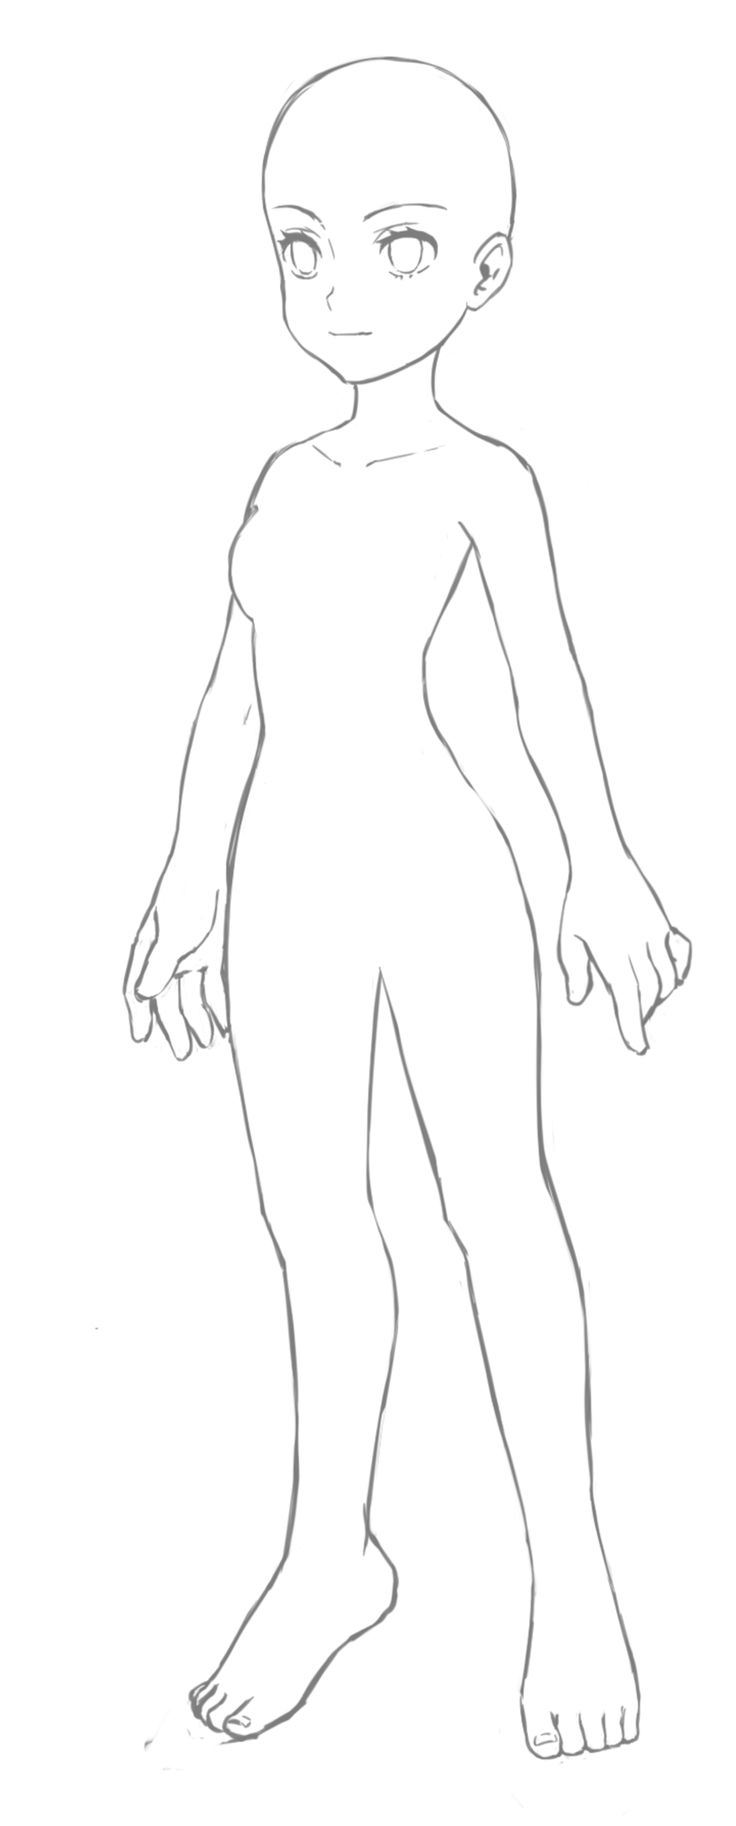 Coloriage mannequin top model pinterest mannequin coloriage et dessin - Coloriage top model a imprimer ...